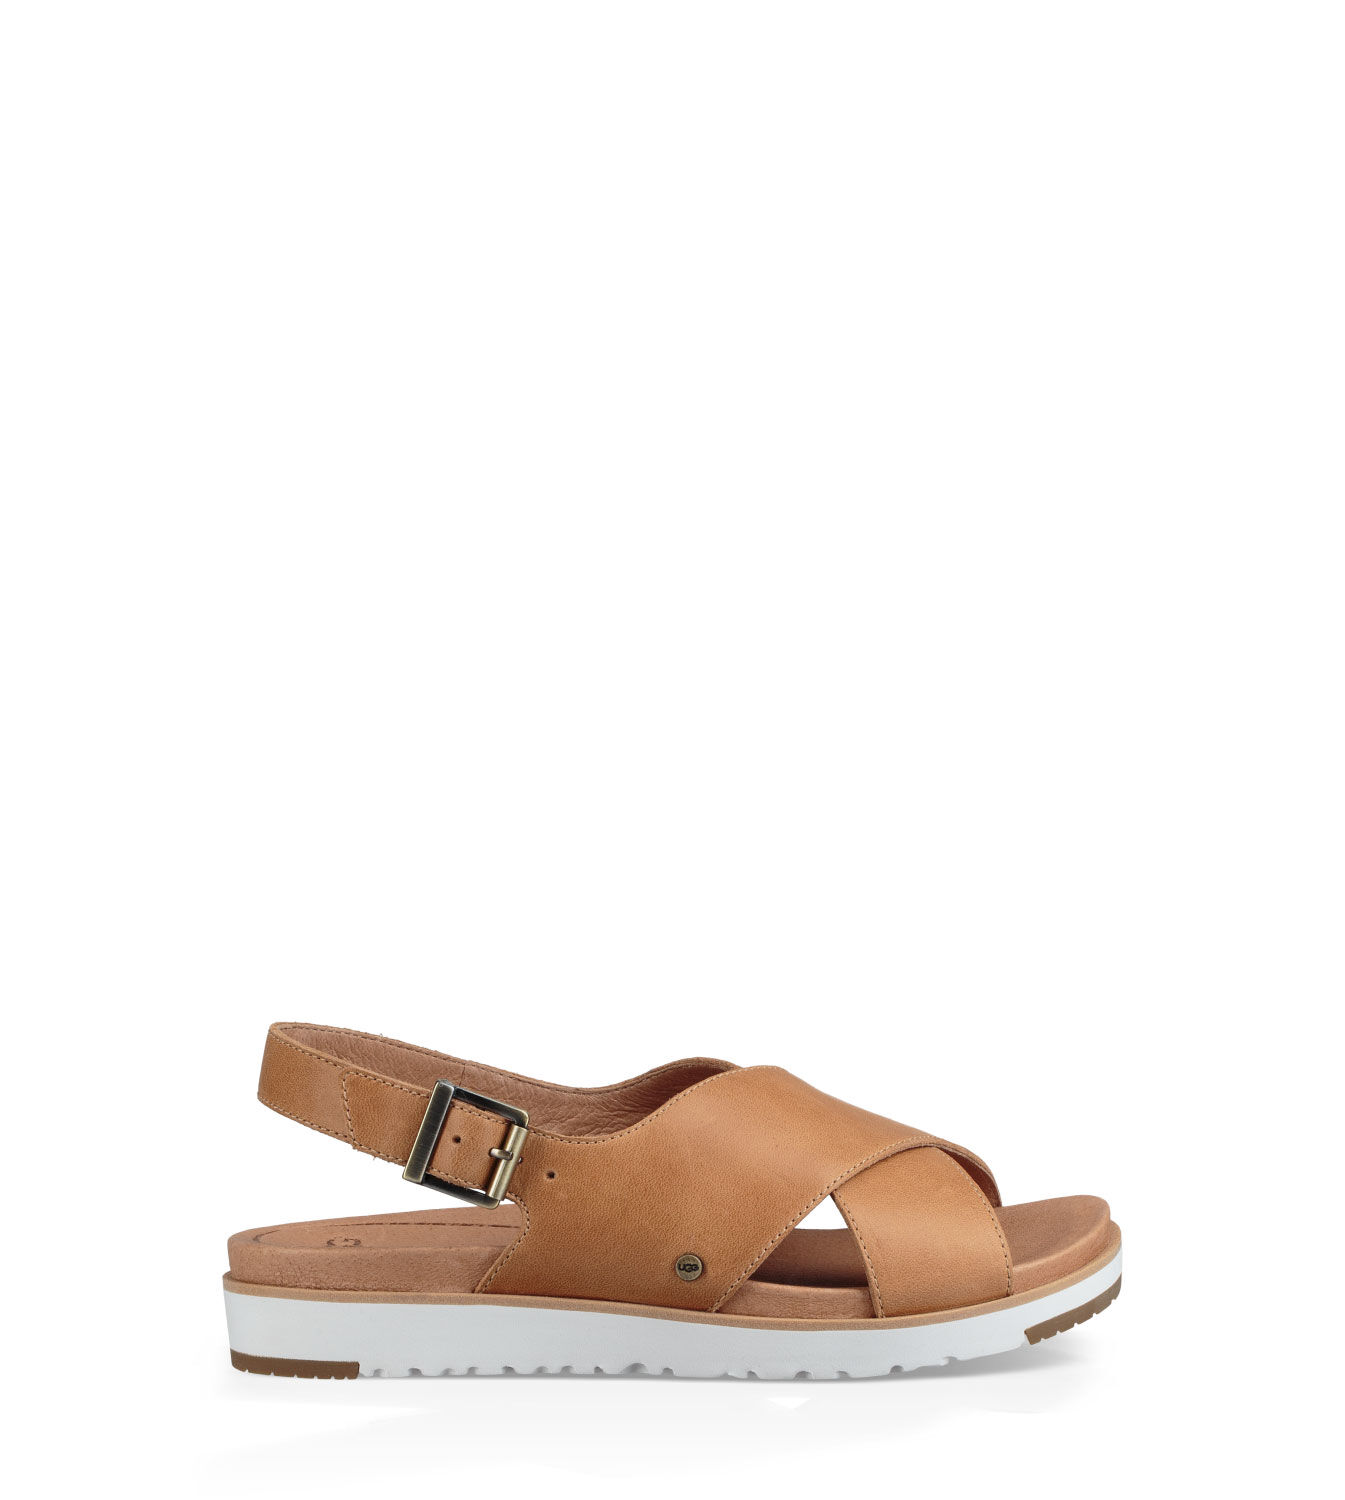 Ca CanadaWomen's Ugg® And Collection Apparel Footwear 54Lj3AR